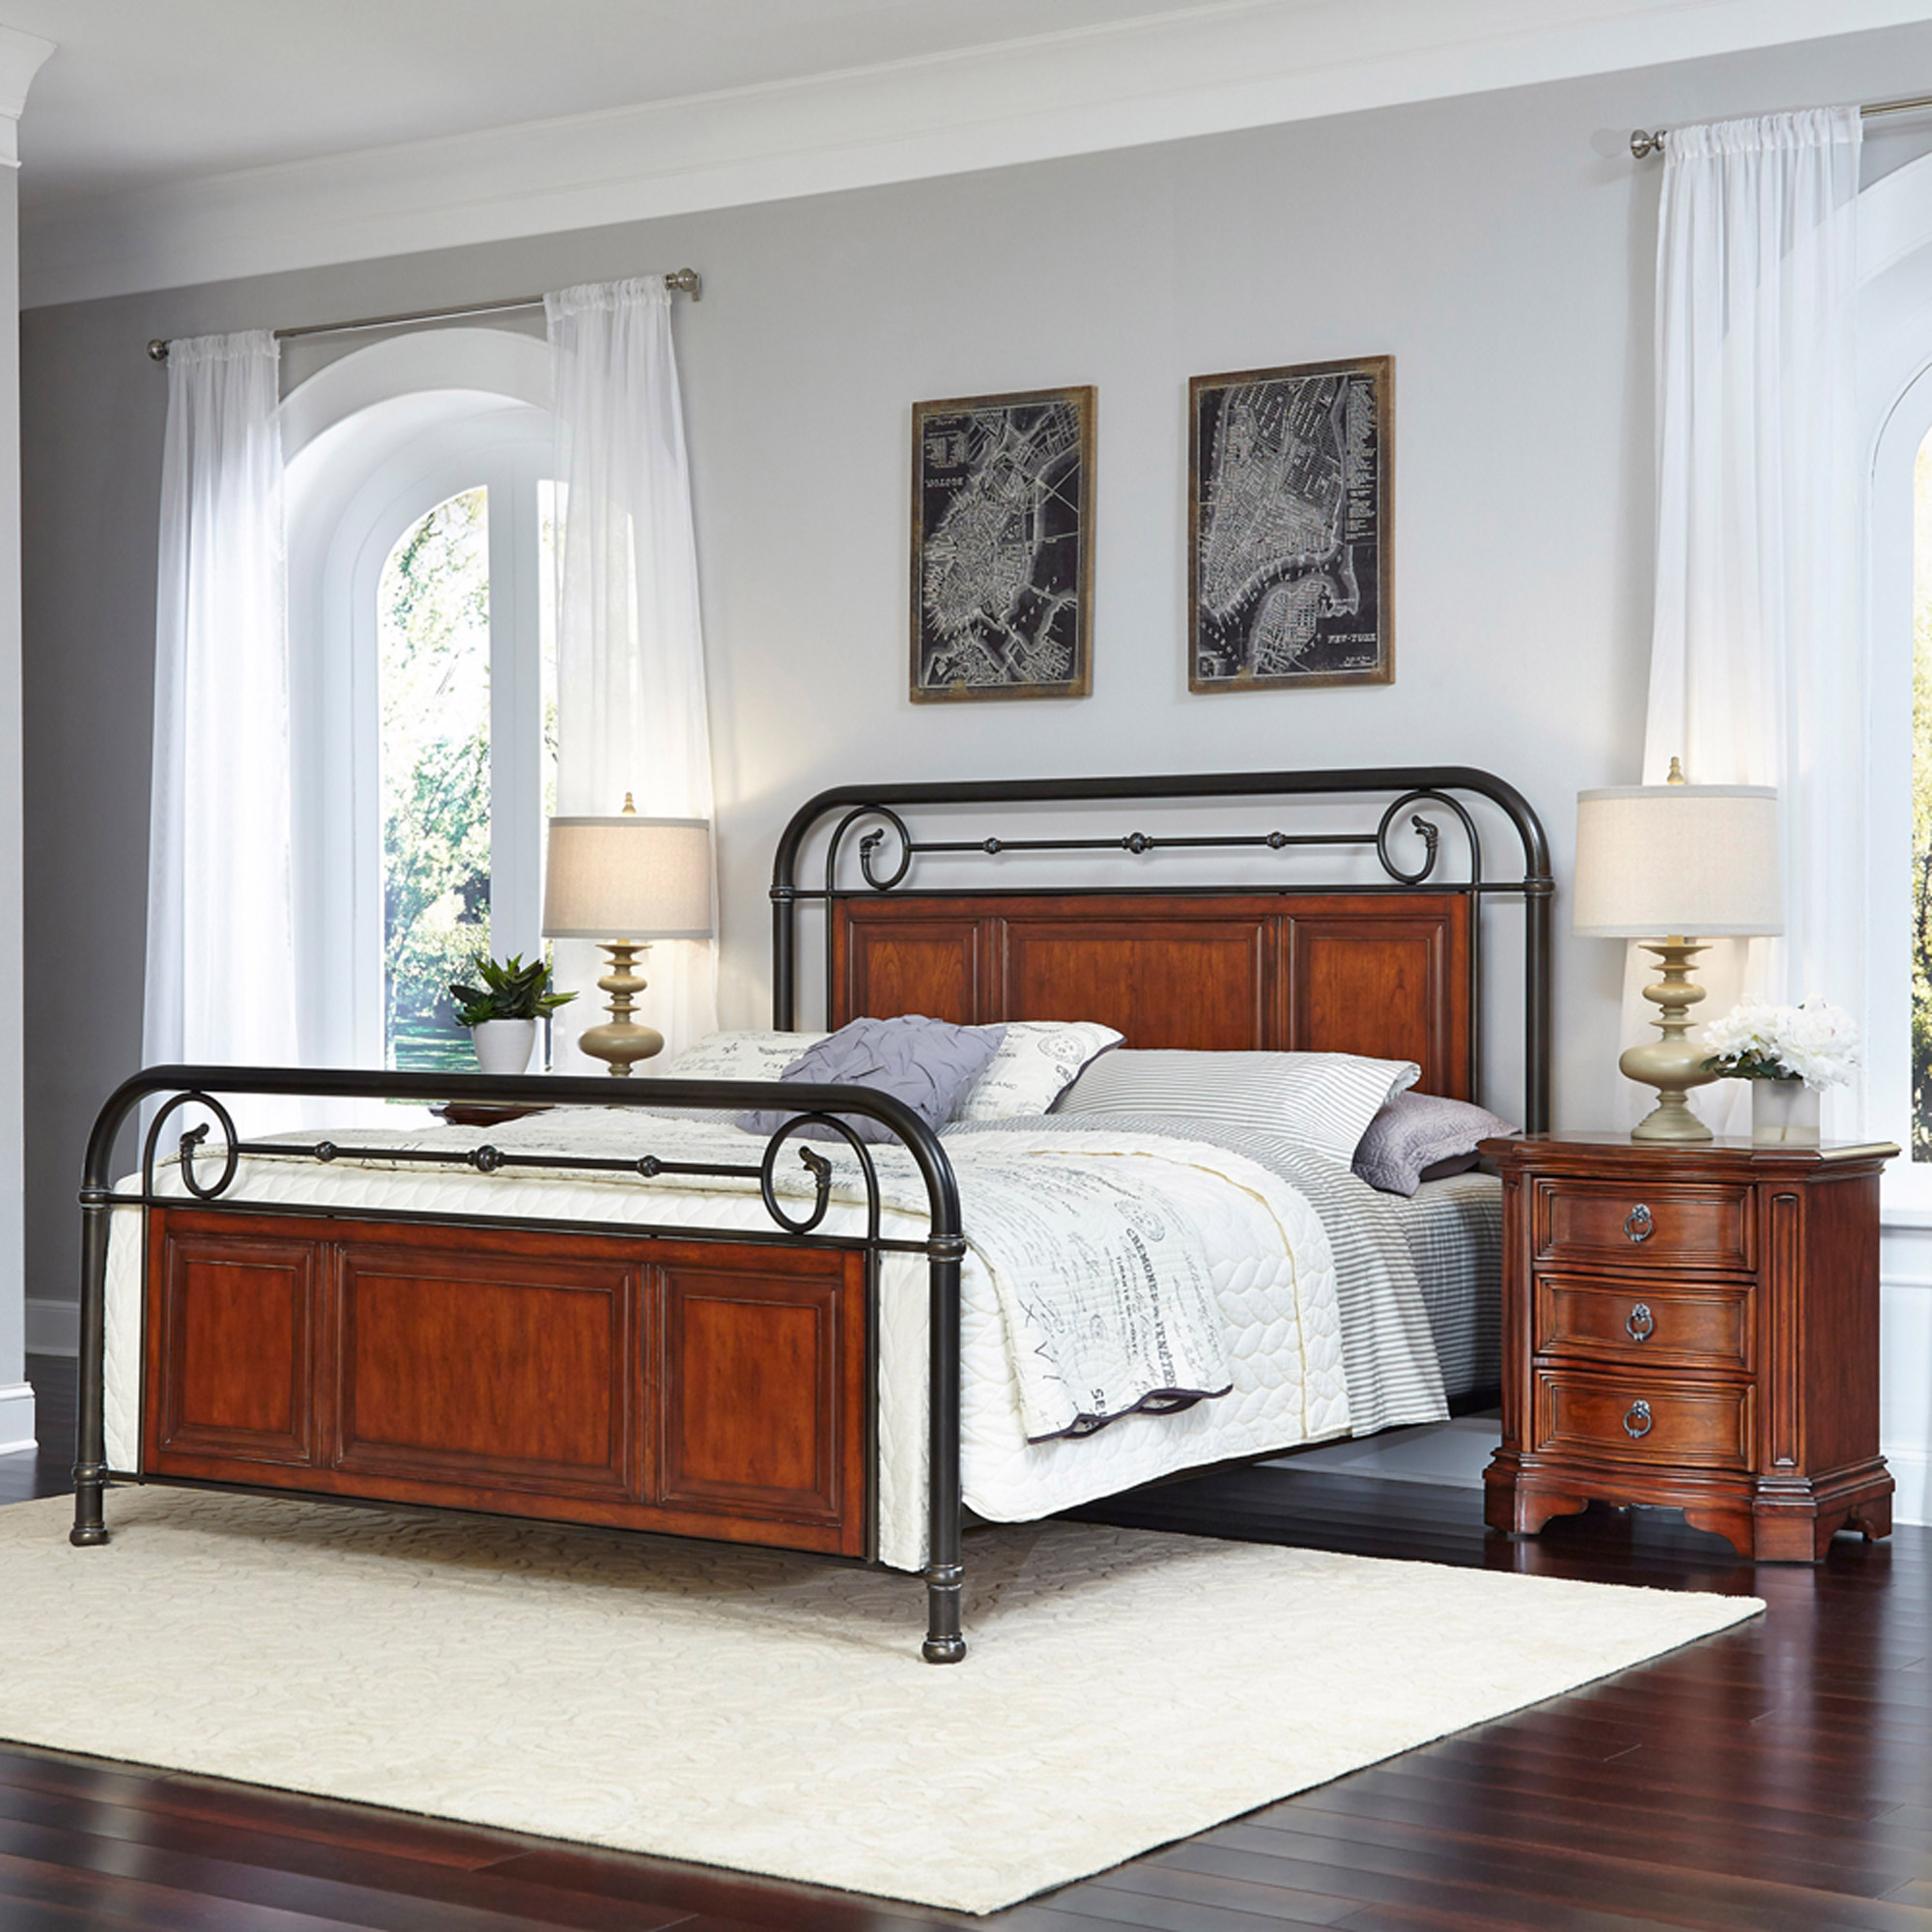 Home Styles Richmond Hill King Bed and 2 Night Stands